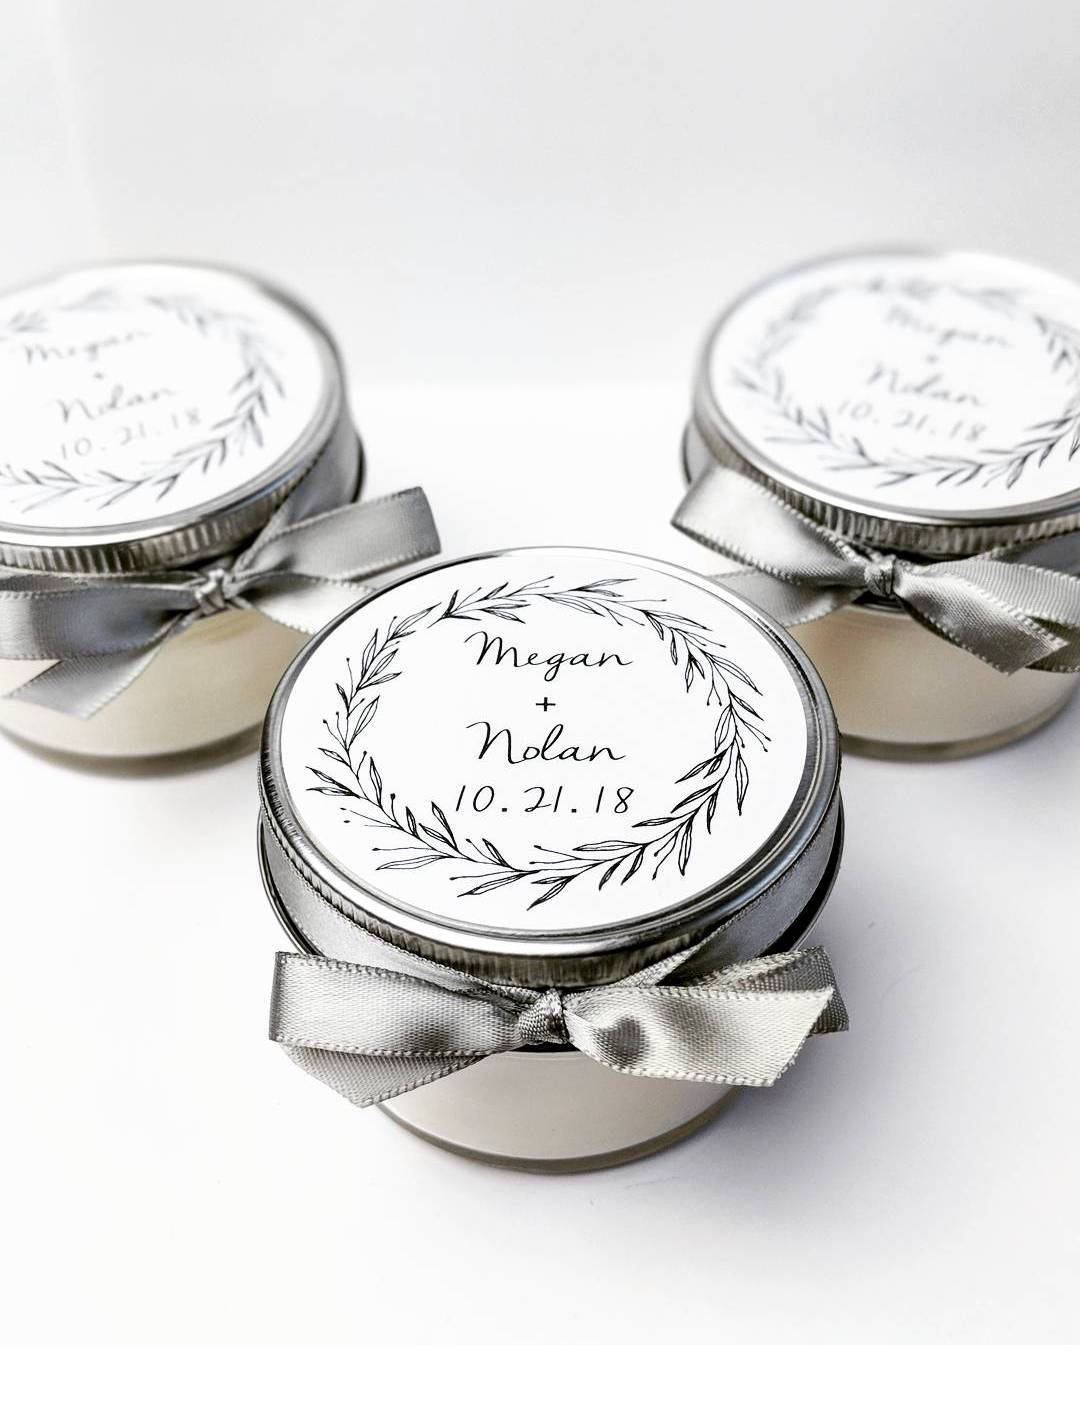 Wedding Favor Candles Mason Jar Favors Bridal Shower.jpg